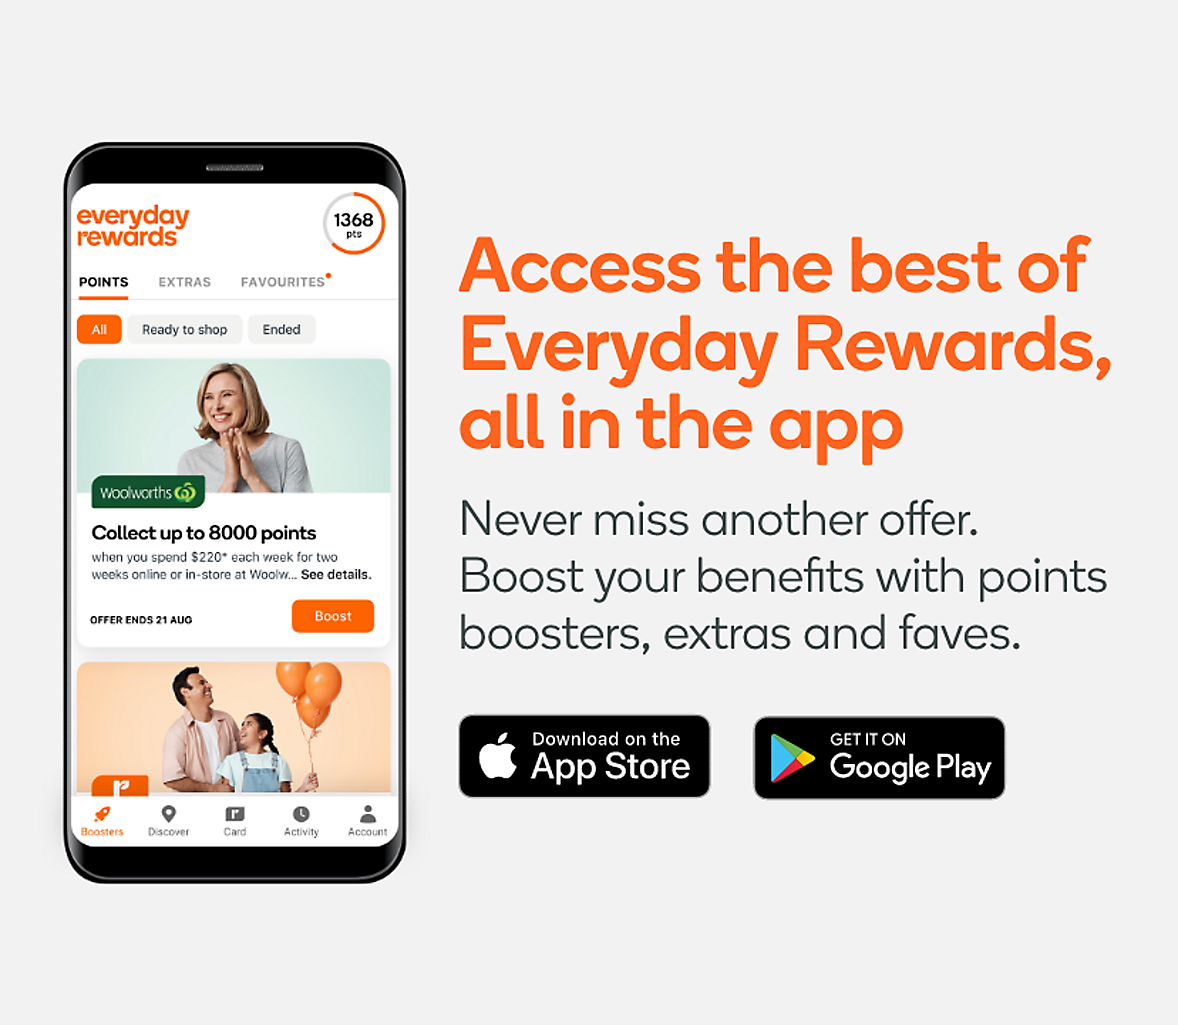 Access the best of Everyday Rewards